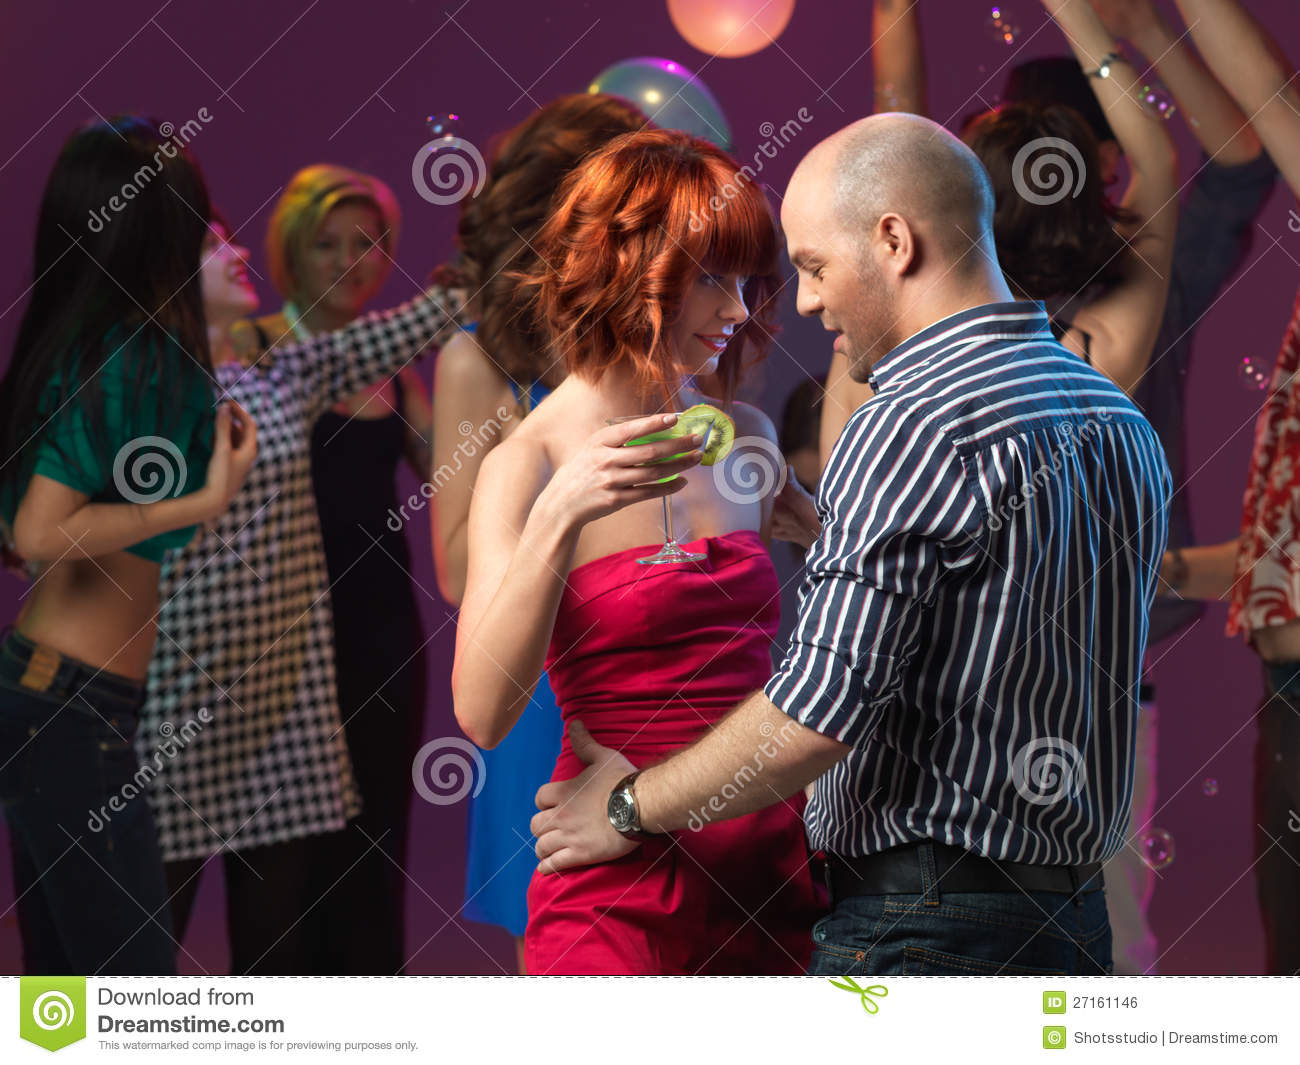 Couple Dancing Flirting Night Club Royalty Free Stock Image